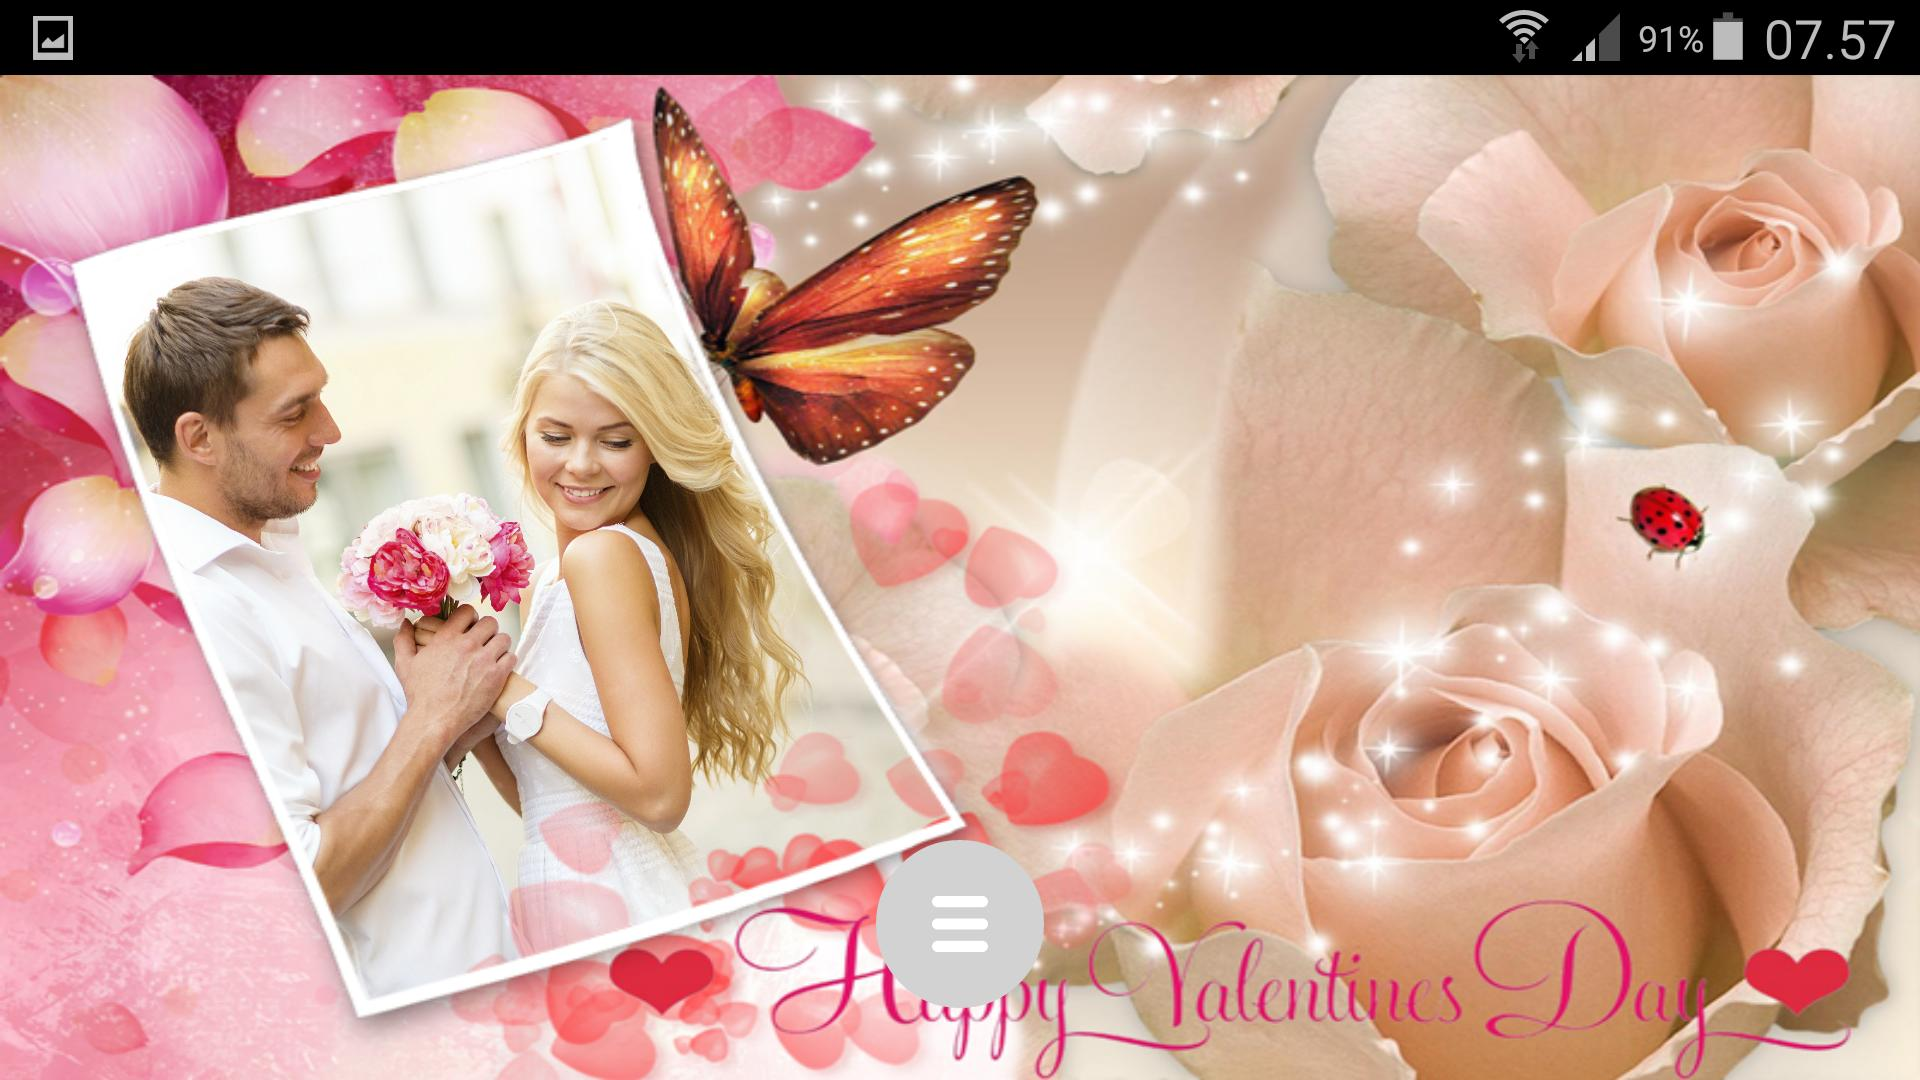 Cornici Per Foto Romantiche.Romantiche Cornici Per Foto For Android Apk Download